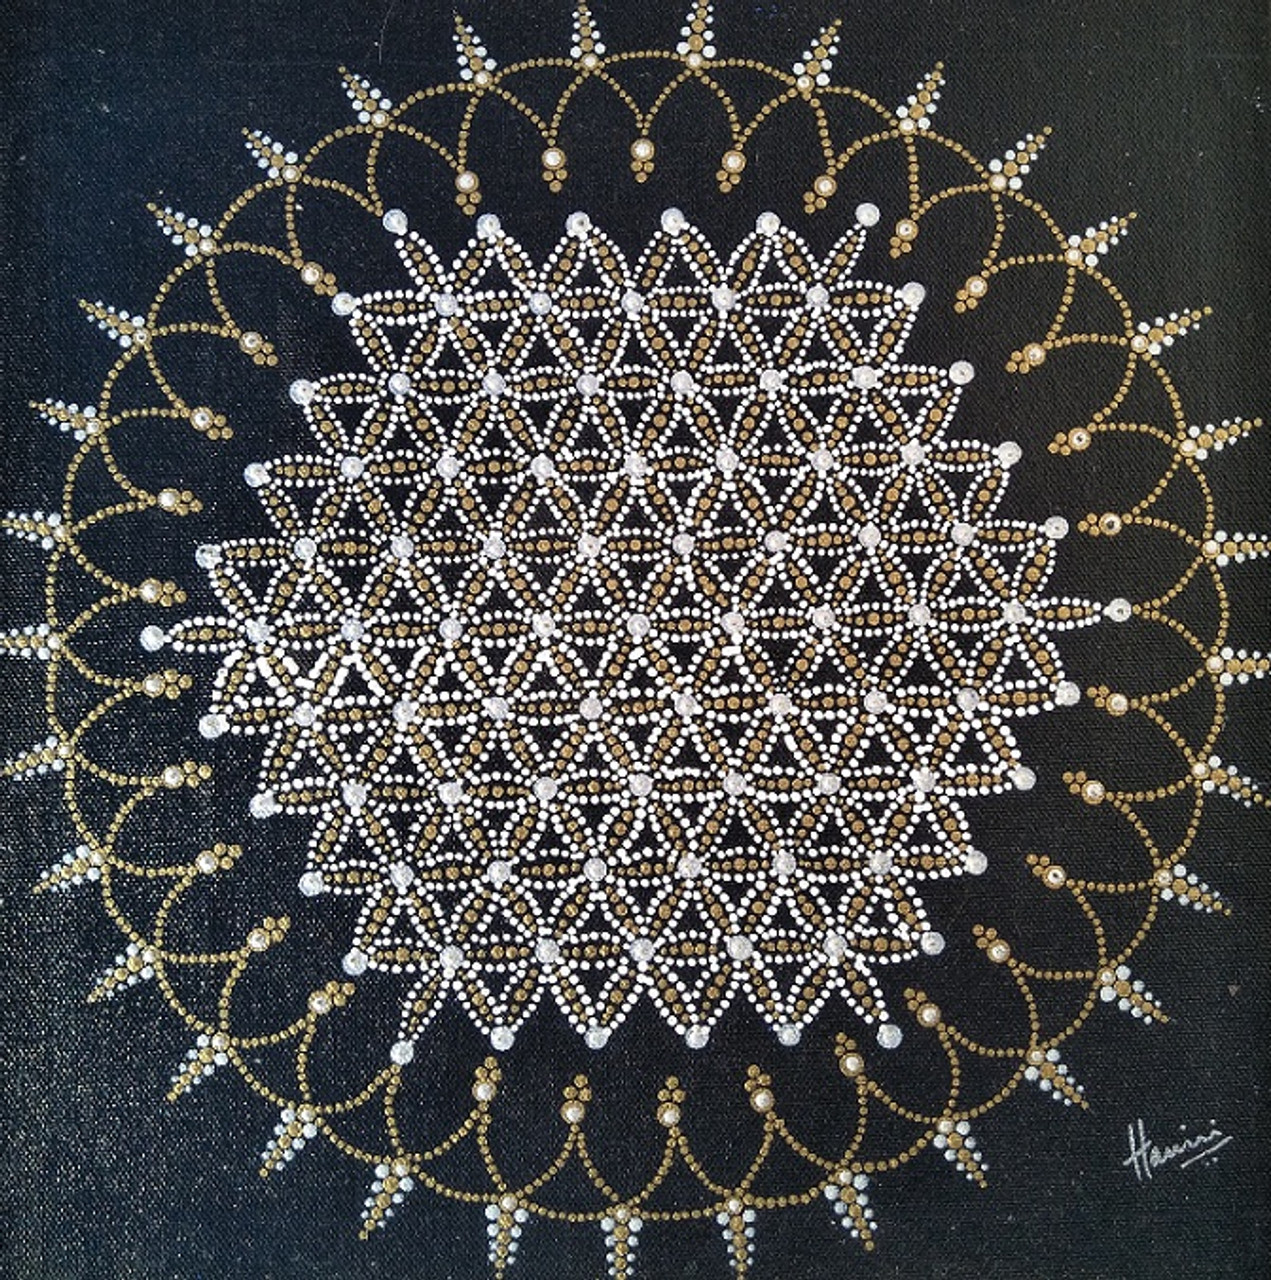 Buy Flower Of Life Mandala Handmade Painting By Harini Jagadish Jagadish Code Art 5398 44397 Paintings For Sale Online In India